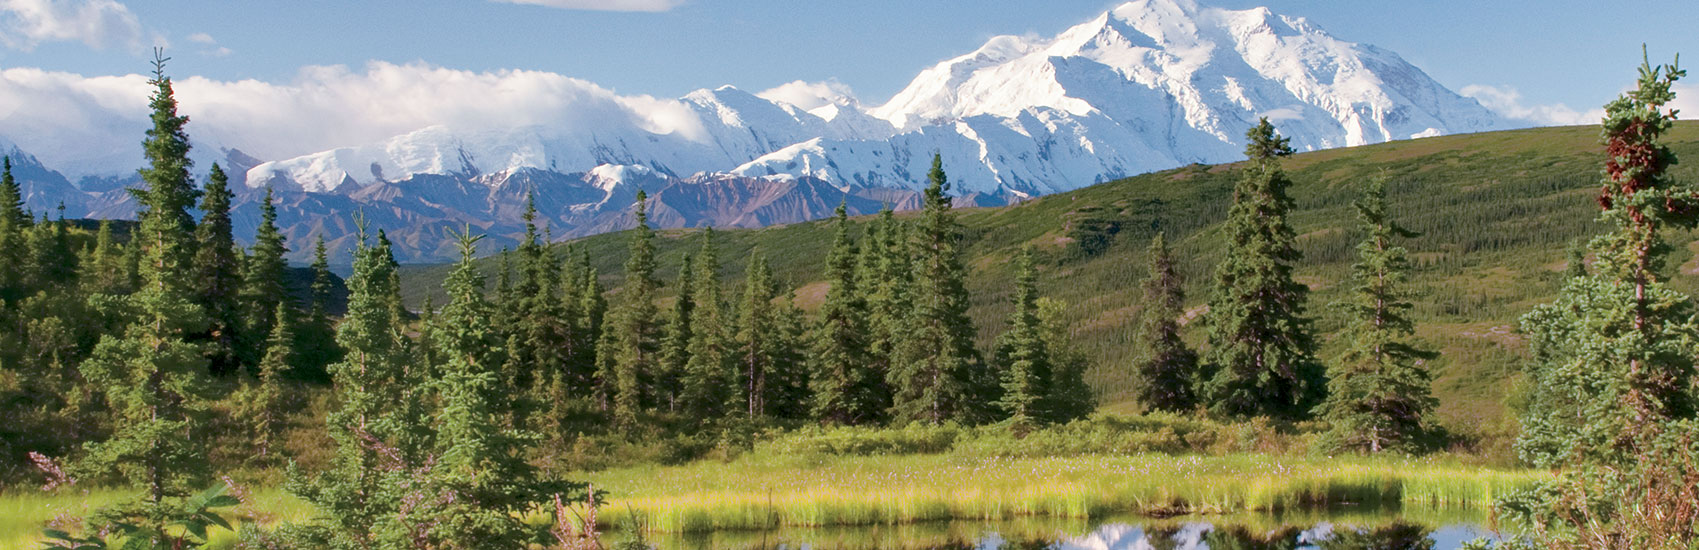 Have it All in Alaska with Holland America 2